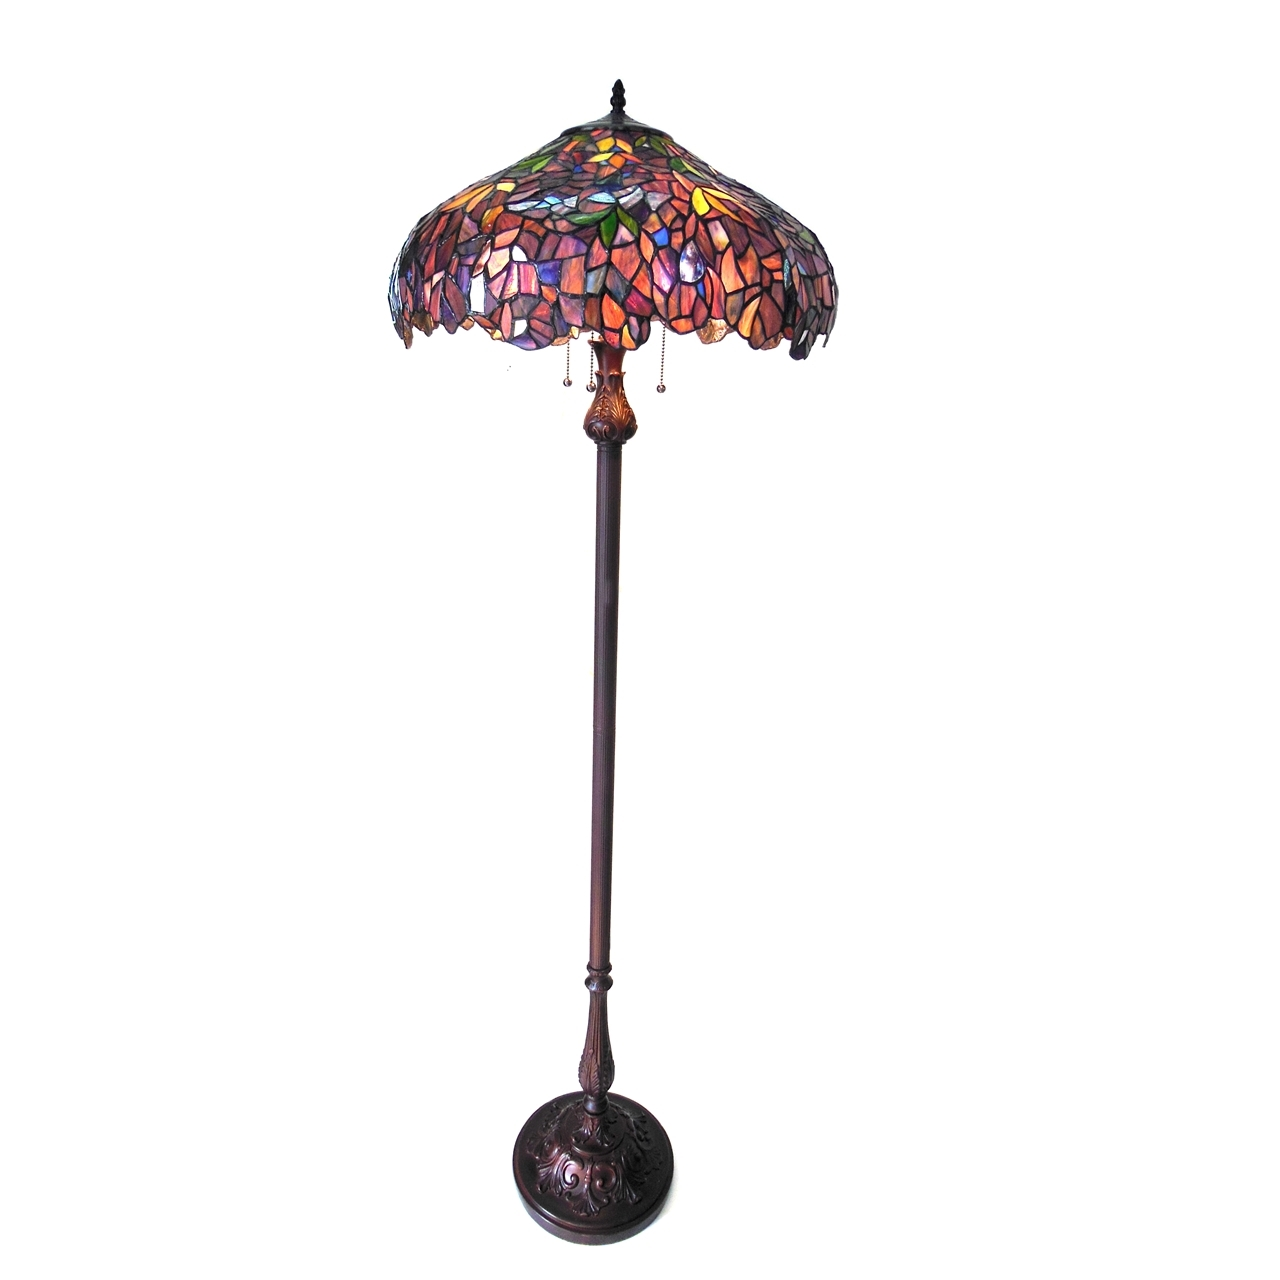 Chloe lighting inc tiffany lamp tiffany lamps tiffany style lamp picture of ch18045pw20 fl3 floor lamp aloadofball Image collections